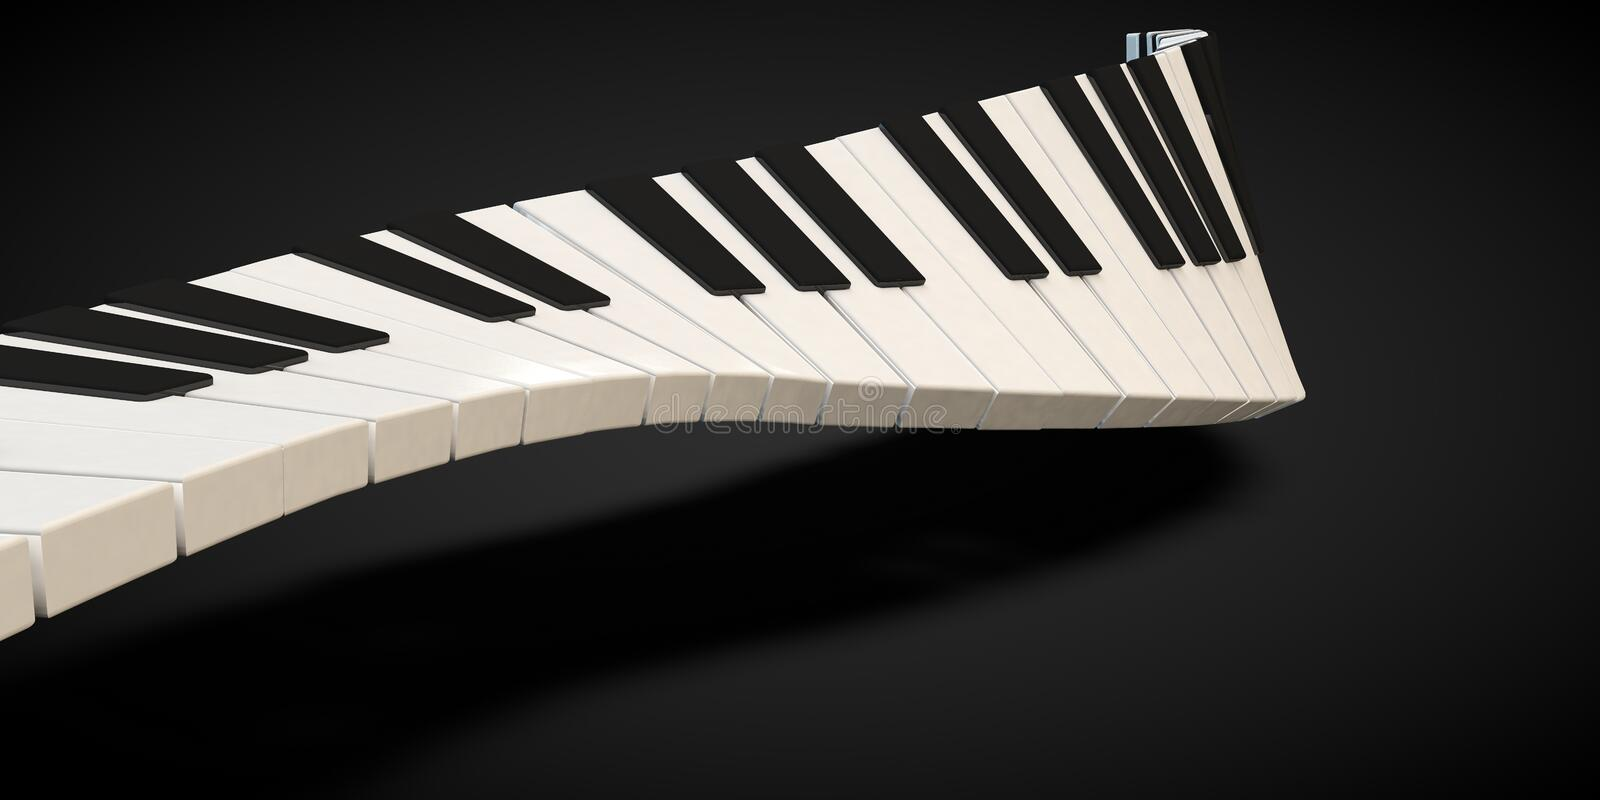 Download 3d Render Of A Piano Keyboard In A Fluid Wavelike Movement Stock Illustration - Illustration: 89298335